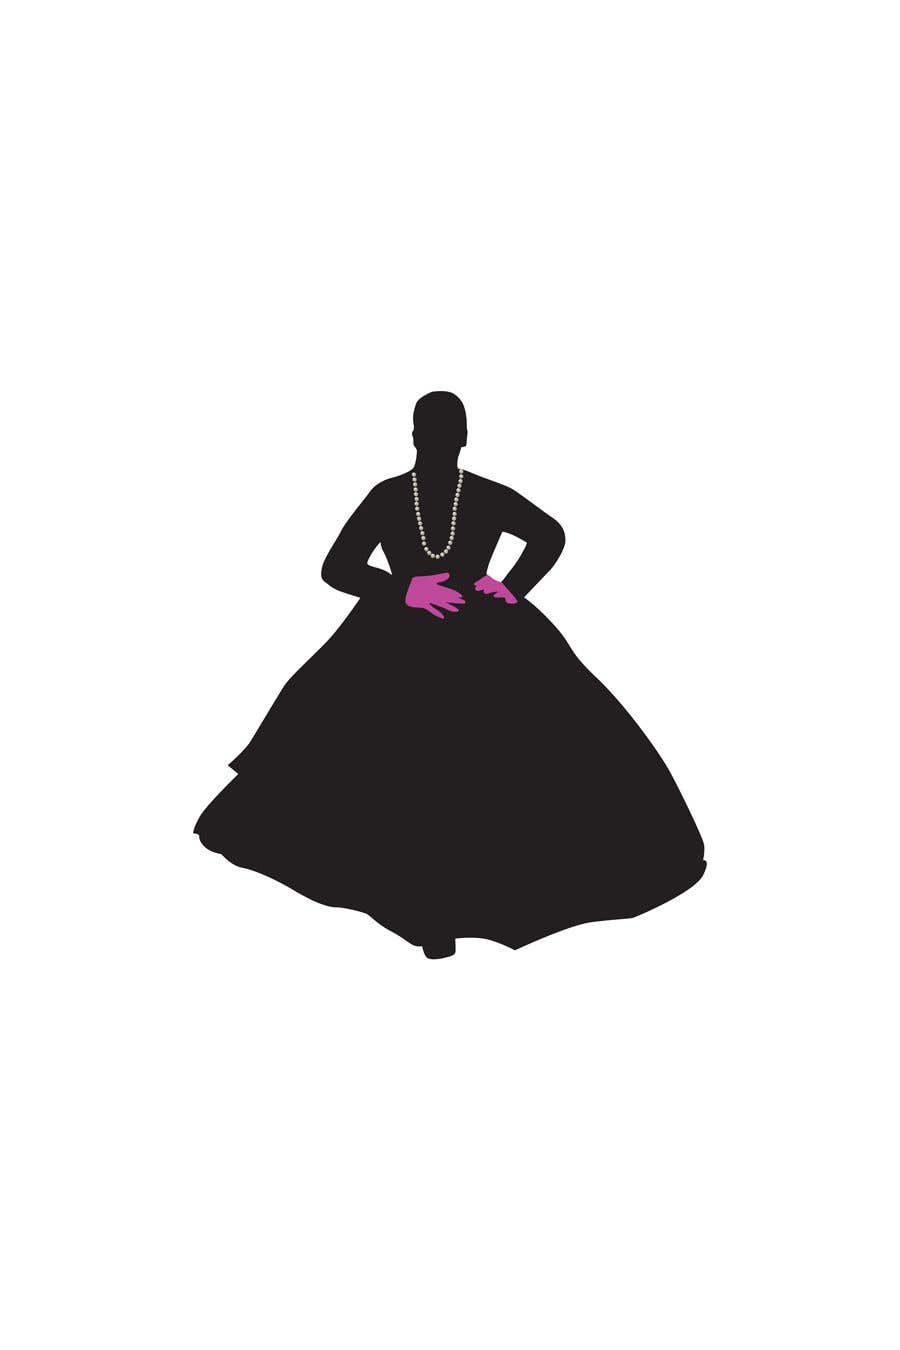 Contest Entry #2 for Single Image Design of a Woman needed for a bookcover